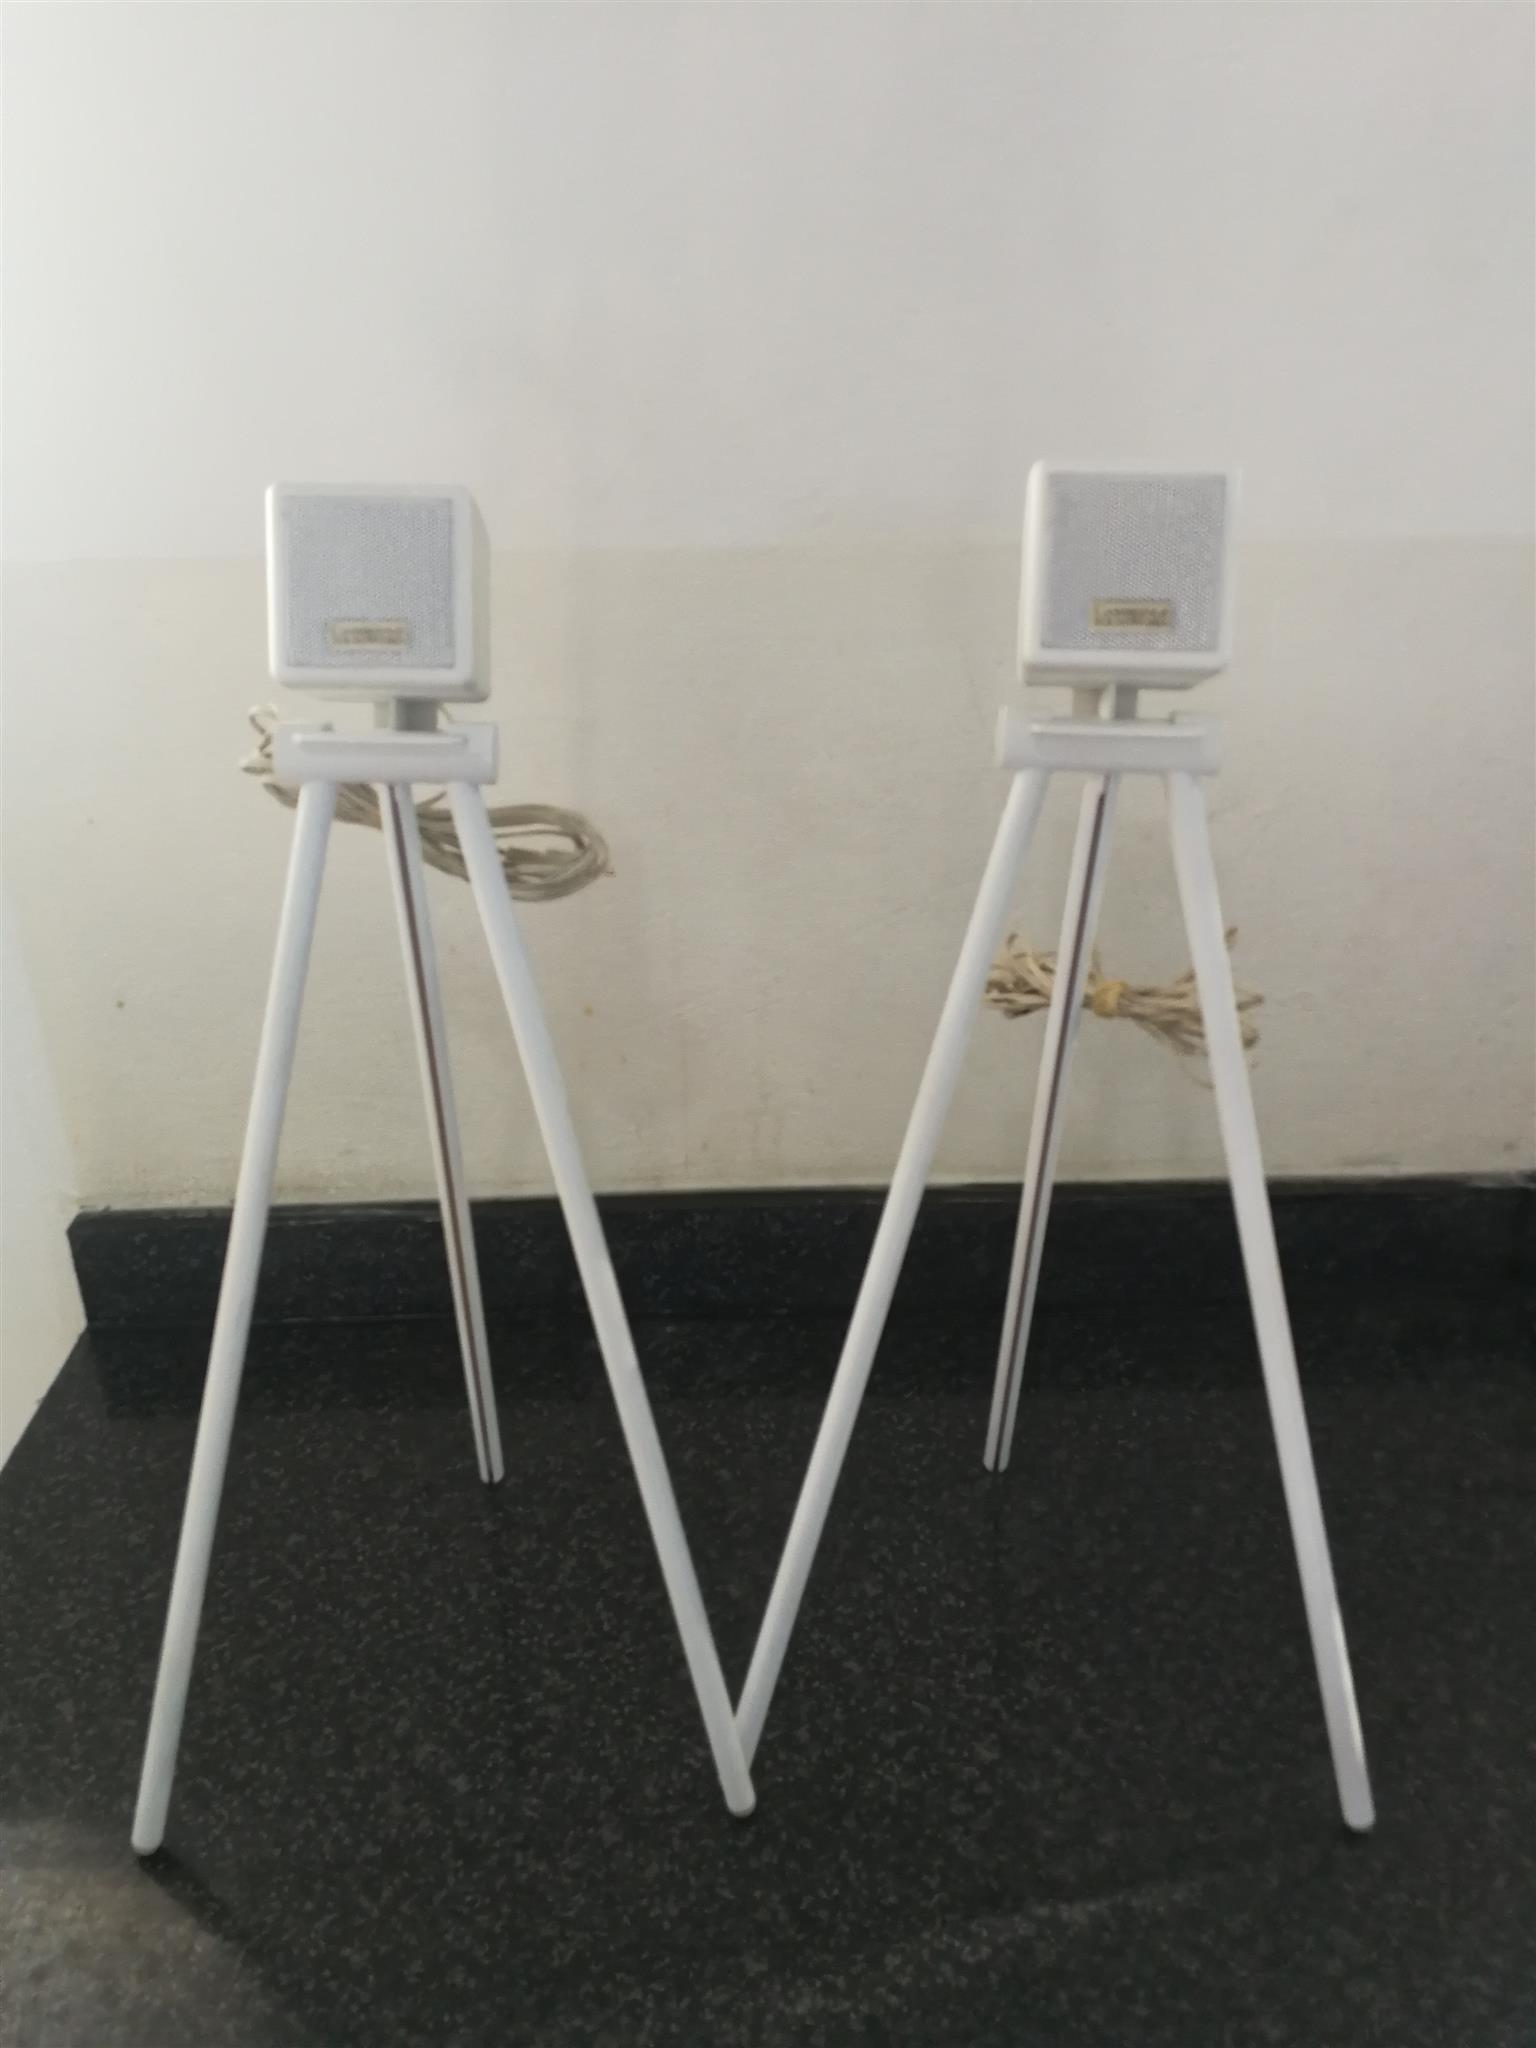 4.1 Cambridge Soundworks Powerful PC Speakers With Rear Speaker Stands.